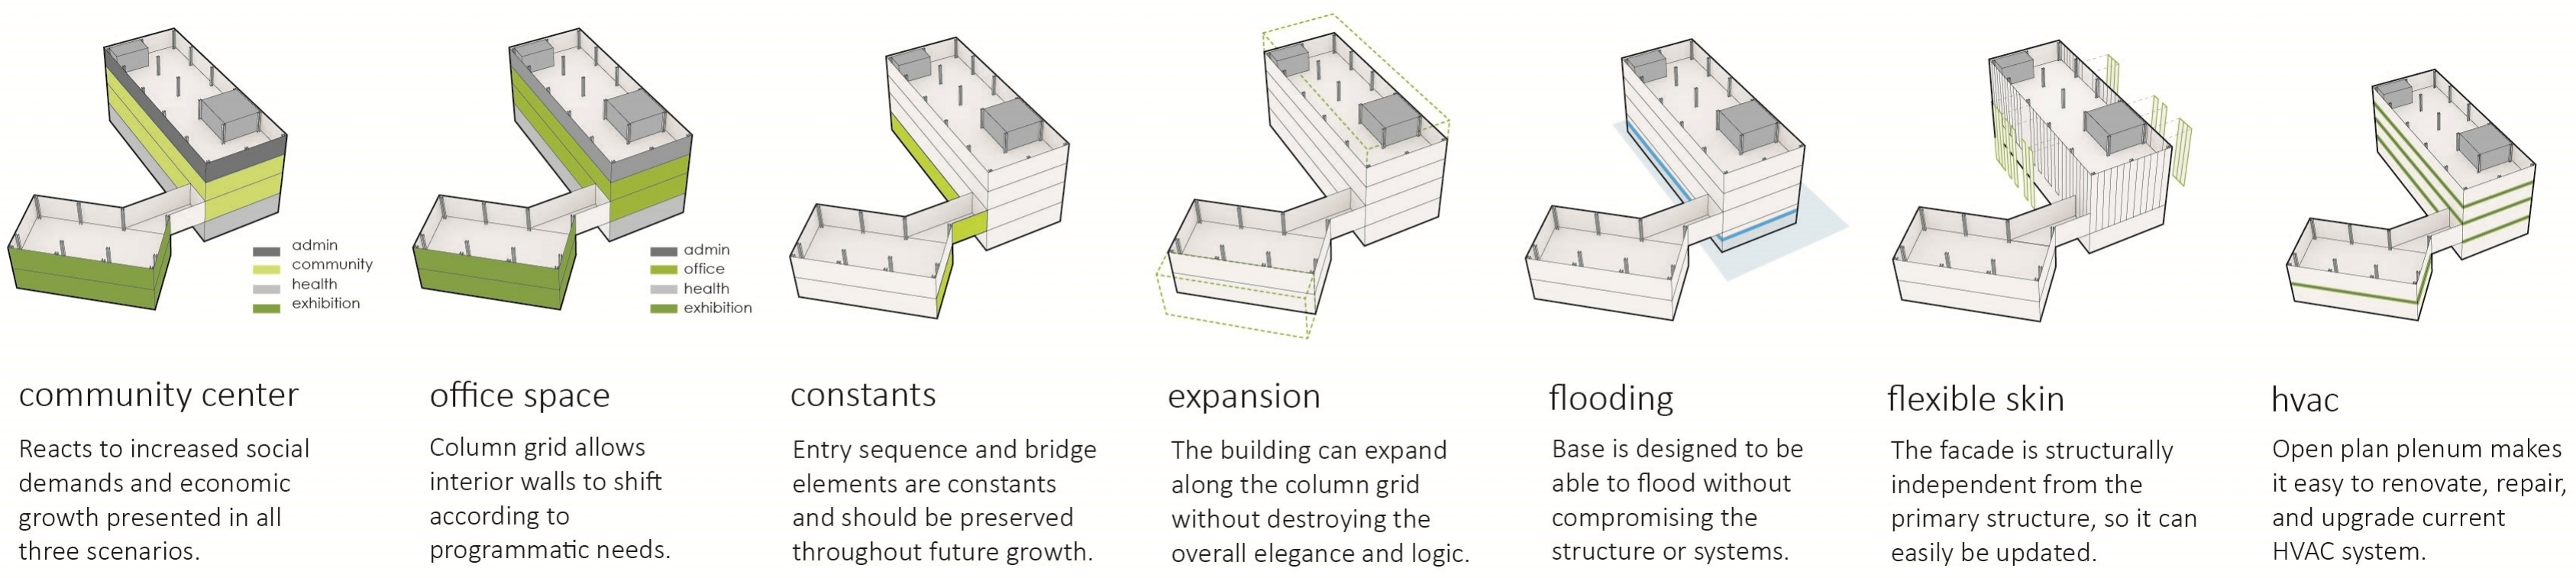 Picture of the Future Use Scenarios of the Building